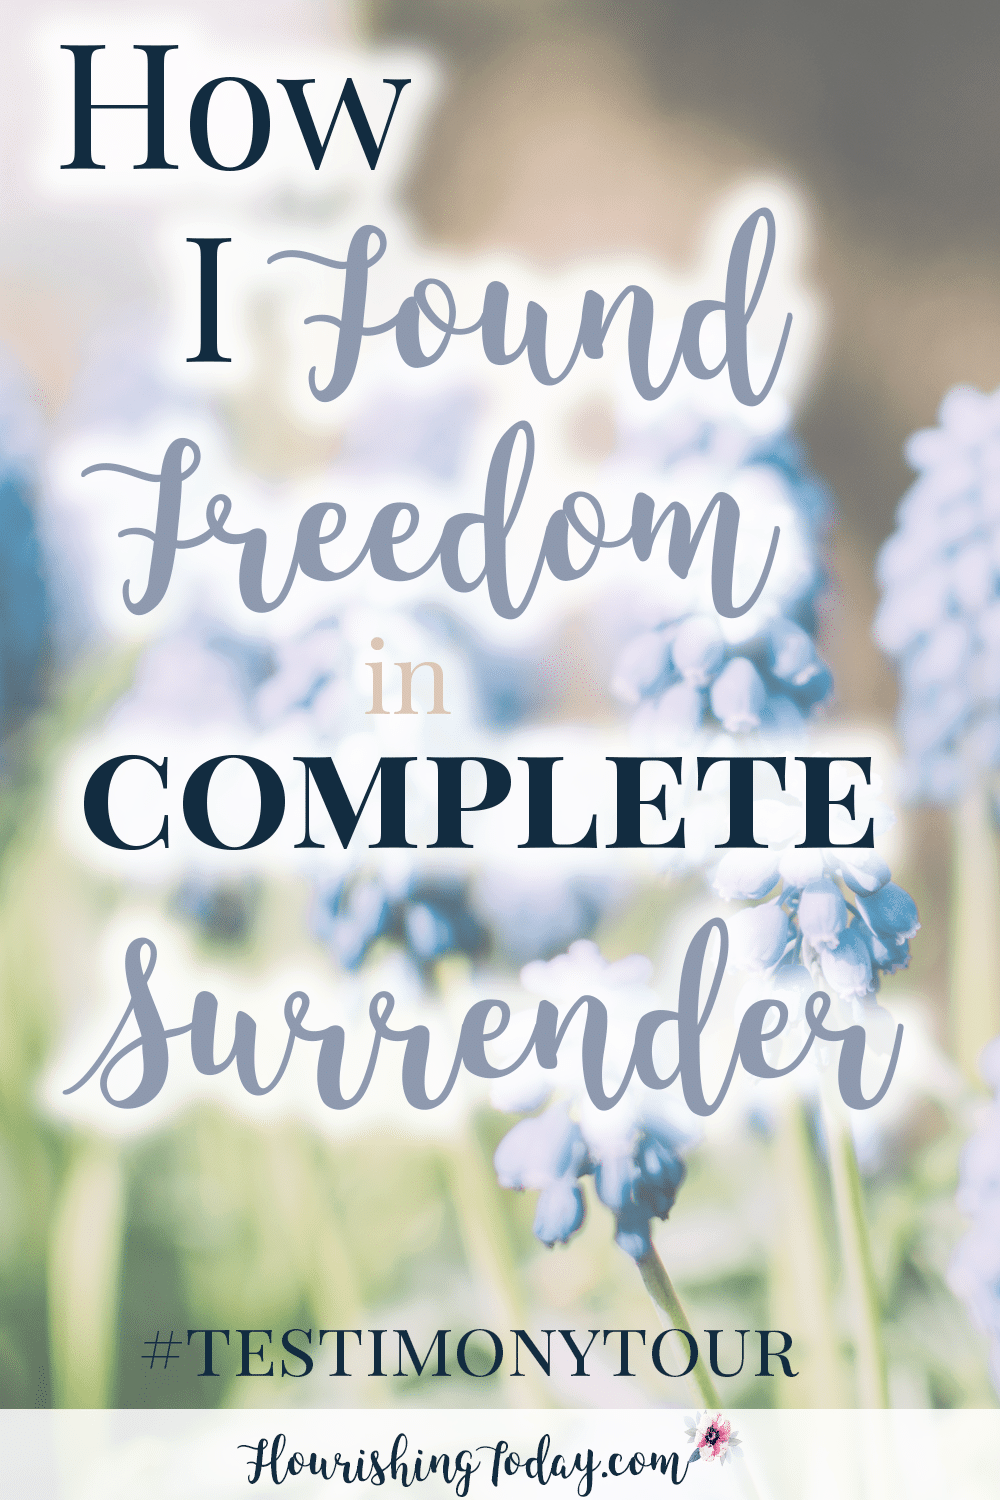 Has life taken the wind out of your sails? I can relate. But I also know there is freedom in surrender to Christ. Have you completely surrendered to Him?